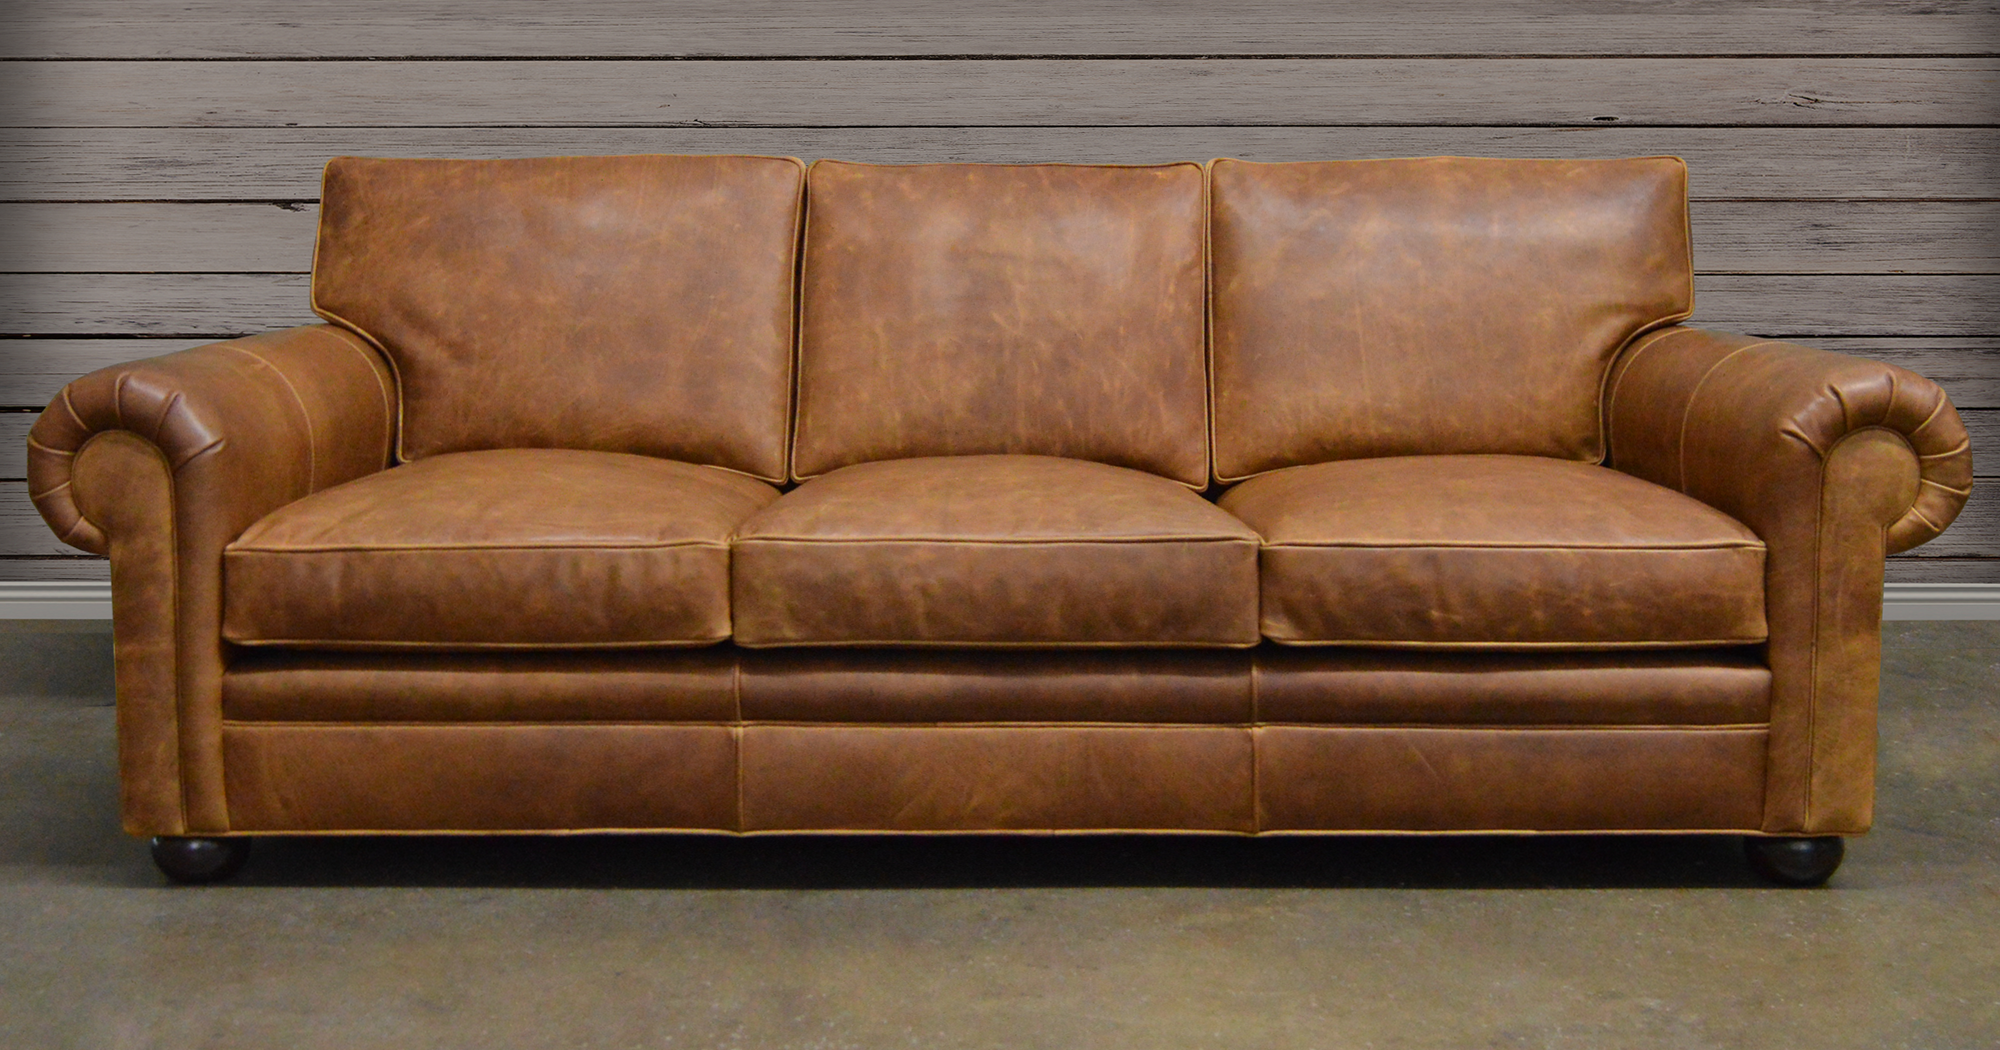 American Made Leather Furniture